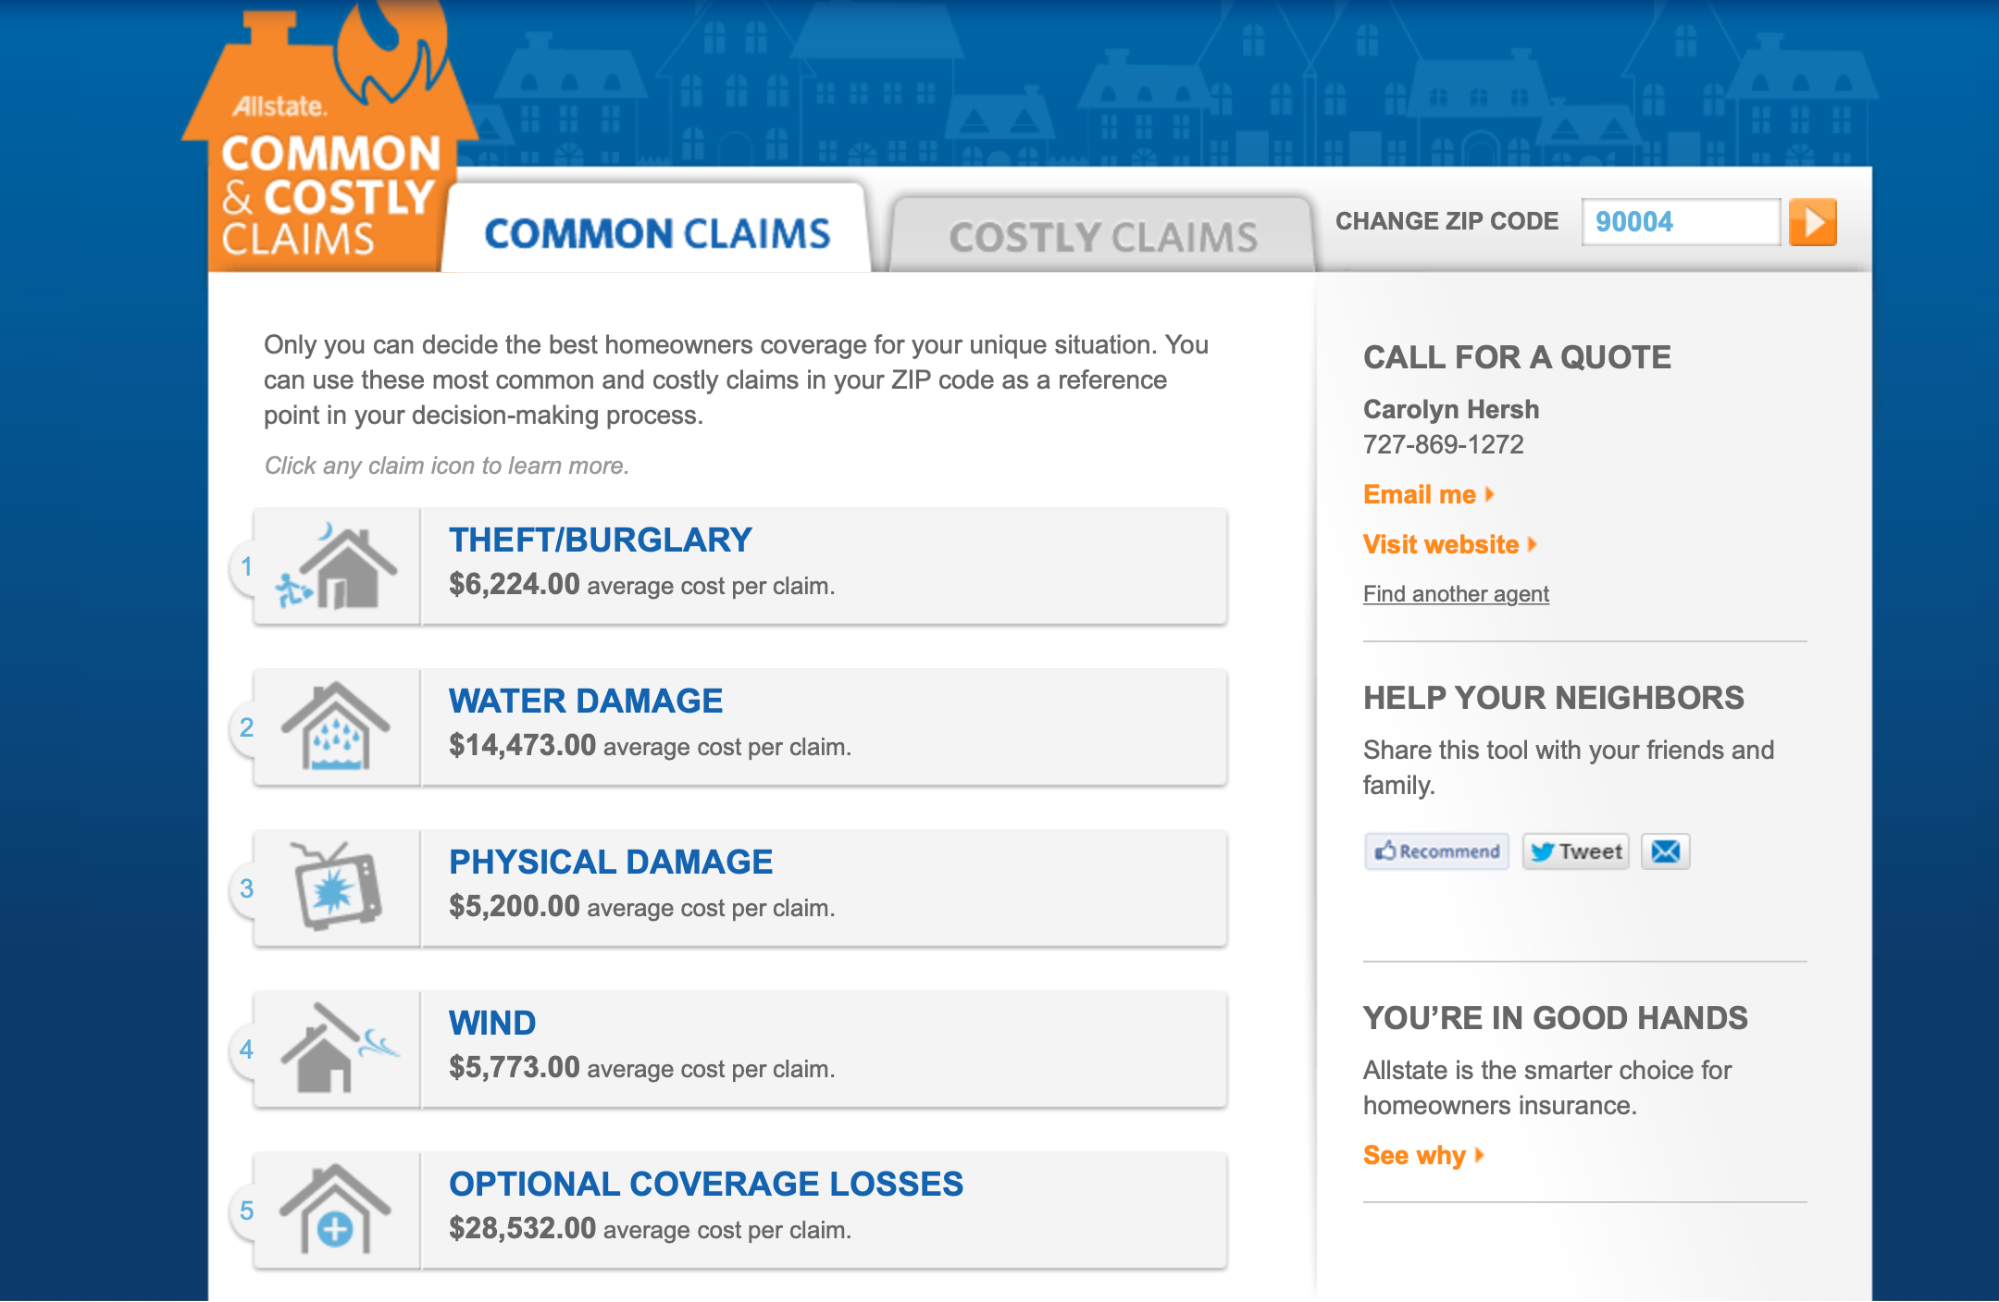 Preview image of Allstate's interactive claims tool